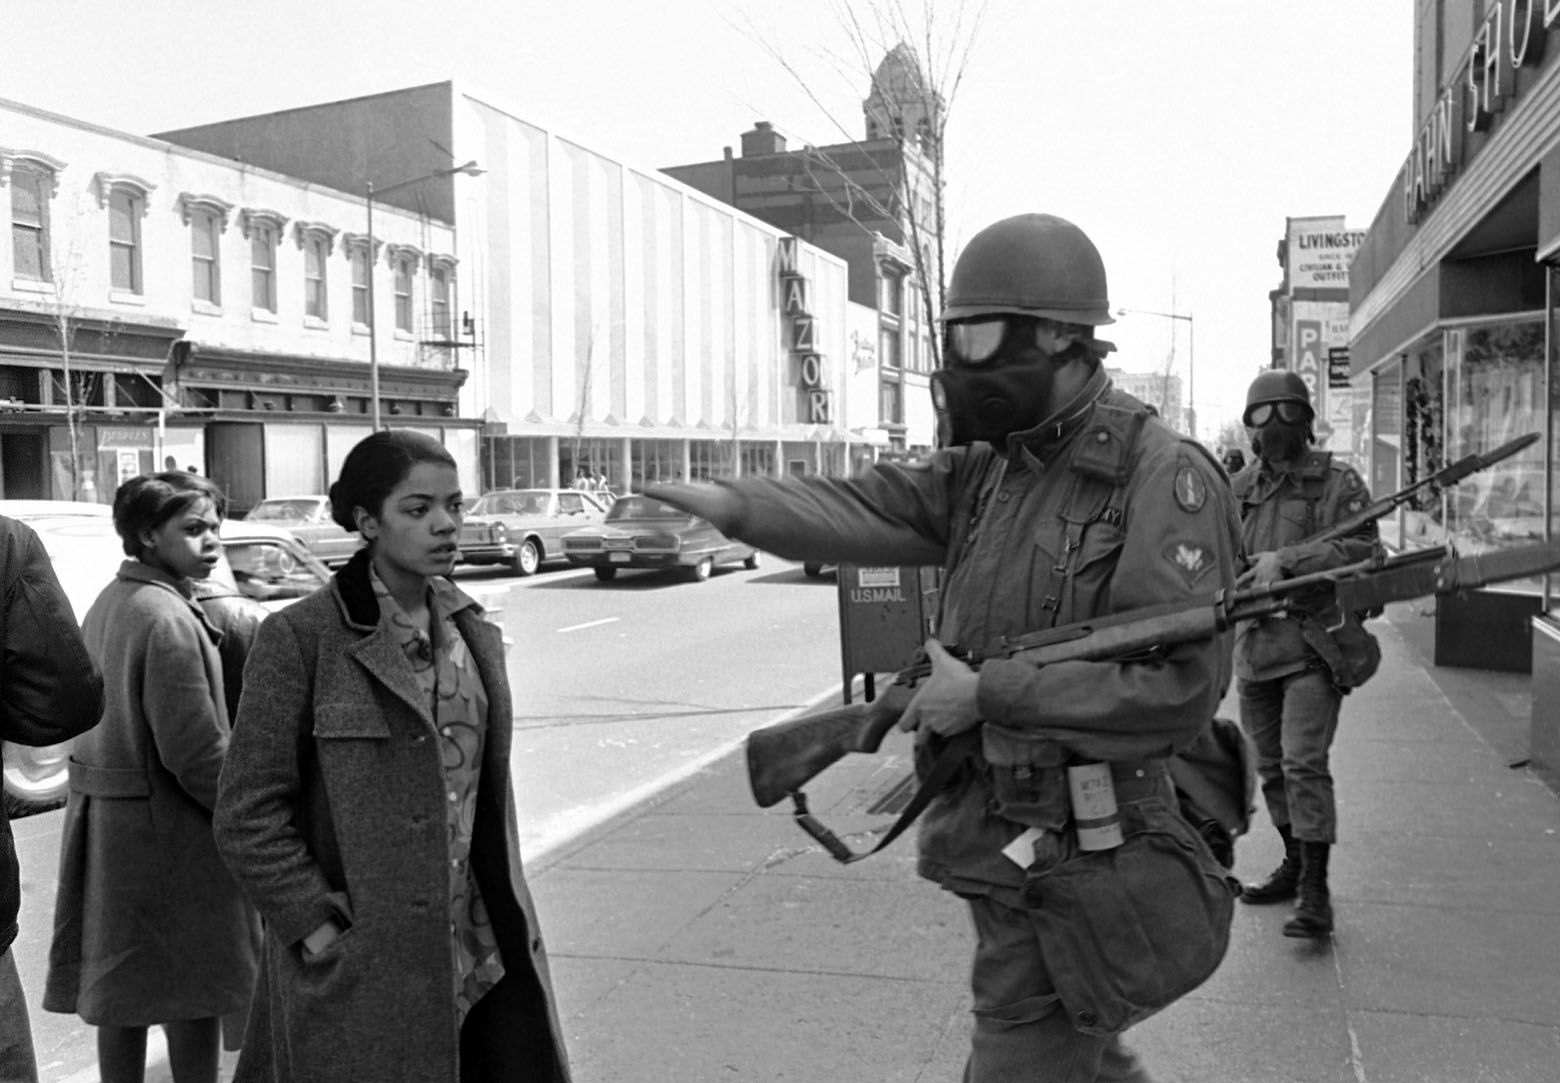 A pedestrian is waved away from a barred area by a gas-masked Army trooper guarding an area near 7th and K Streets, in northwest Washington on April 6, 1968. Another trooper is behind him. Their bayoneted rifles are sheathed. (AP Photo/Bob Schutz)